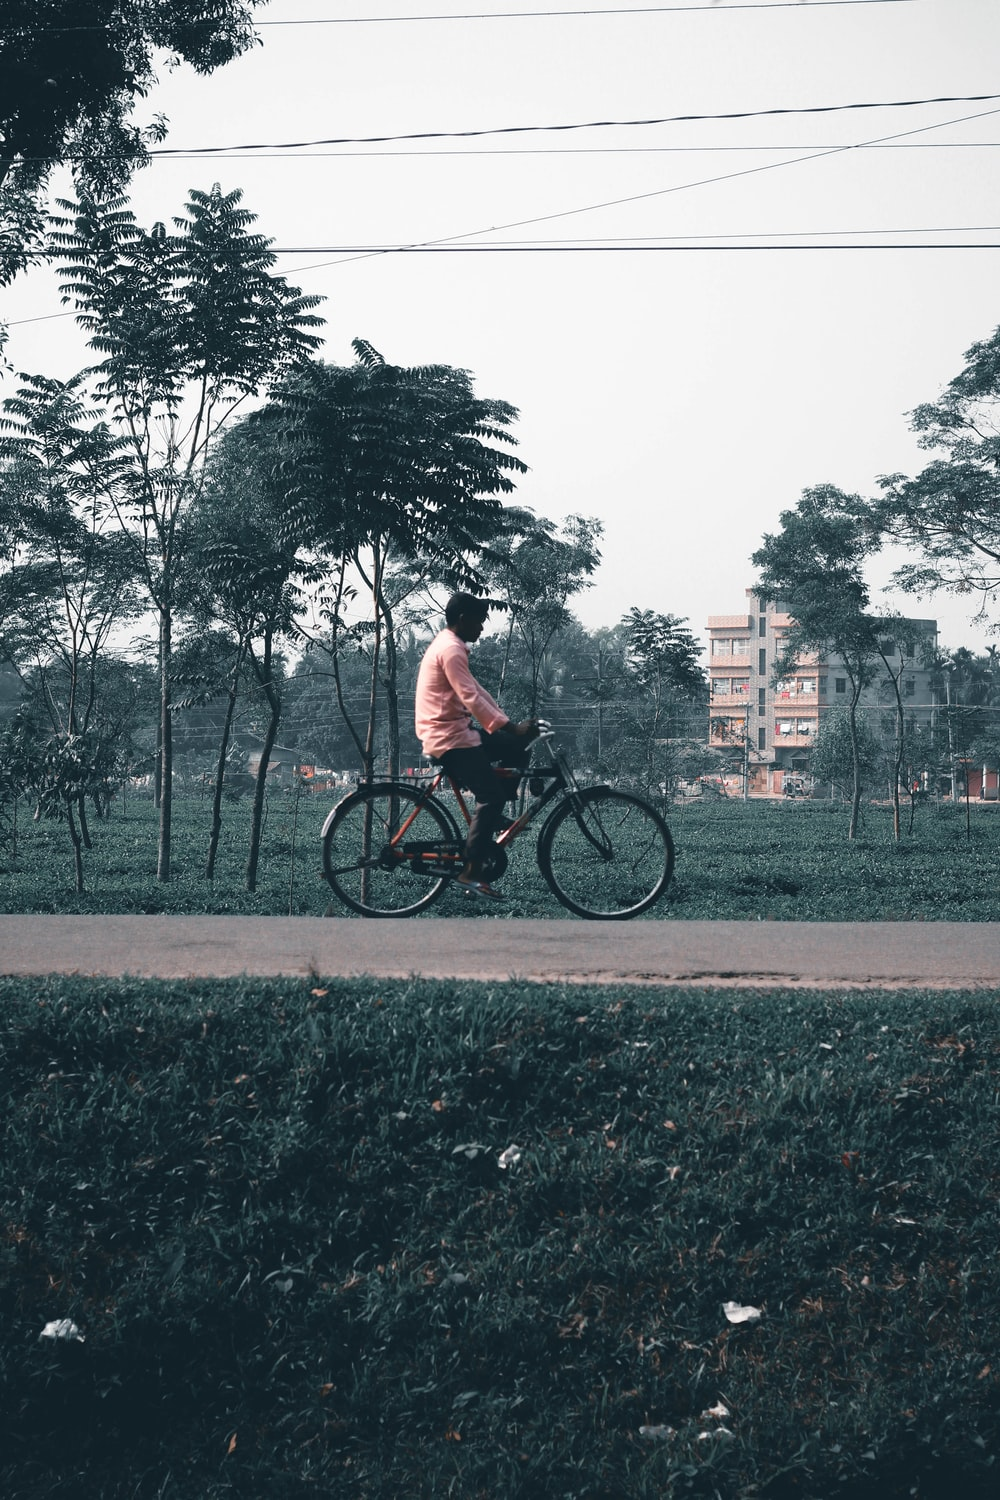 man in white t-shirt riding bicycle on road during daytime